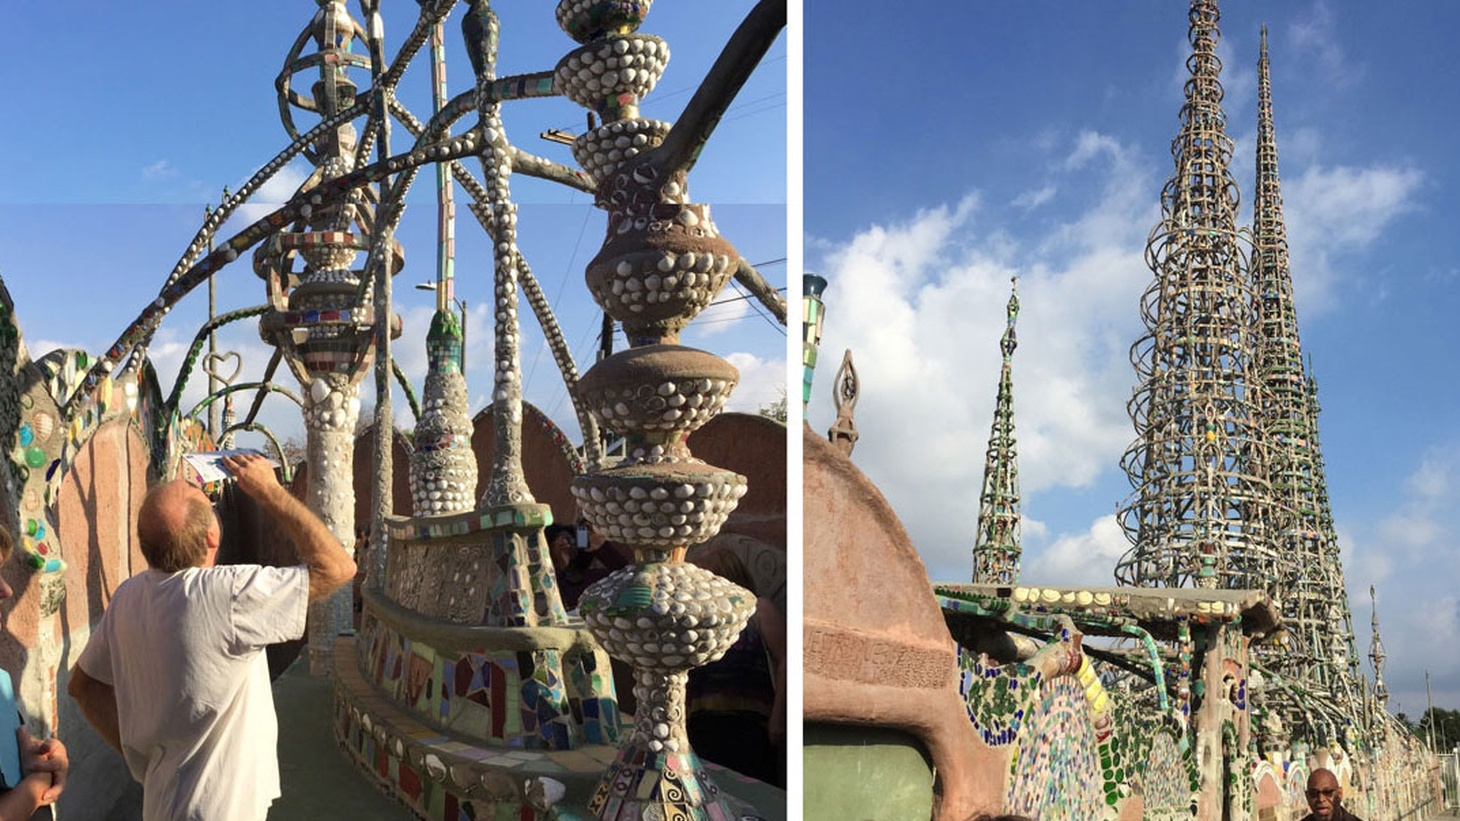 Edward Goldman marvels at the the urban landmark of Watts Towers, the sculptural works of LA artist Alison Saar, and the recent Robert Wilson production featuring Mikhail Baryshnikov and Willem Dafoe.